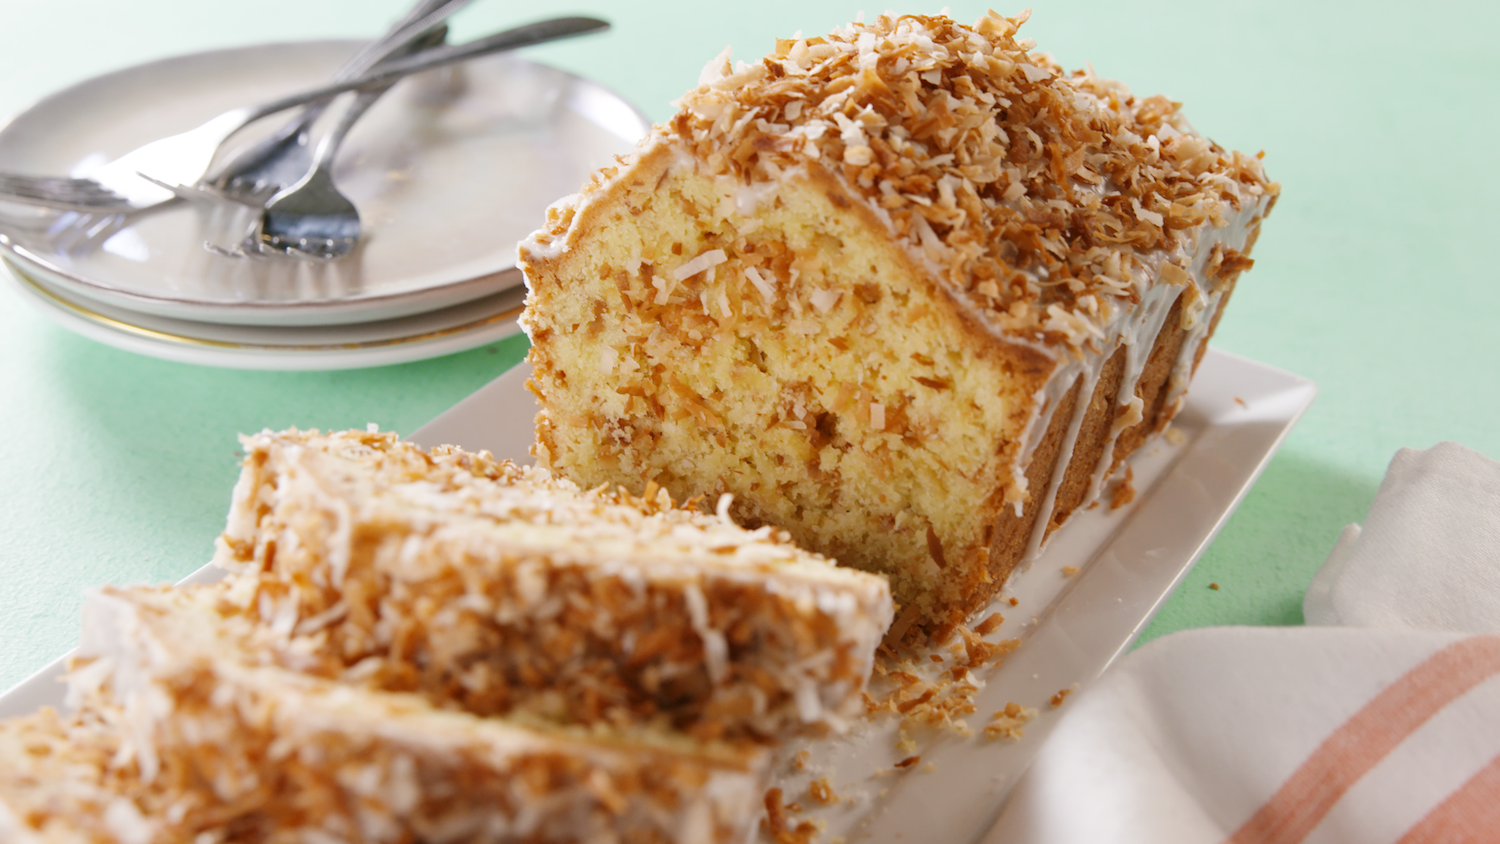 Best Toasted Coconut Pound Cake Recipe - How to Make Toasted ...